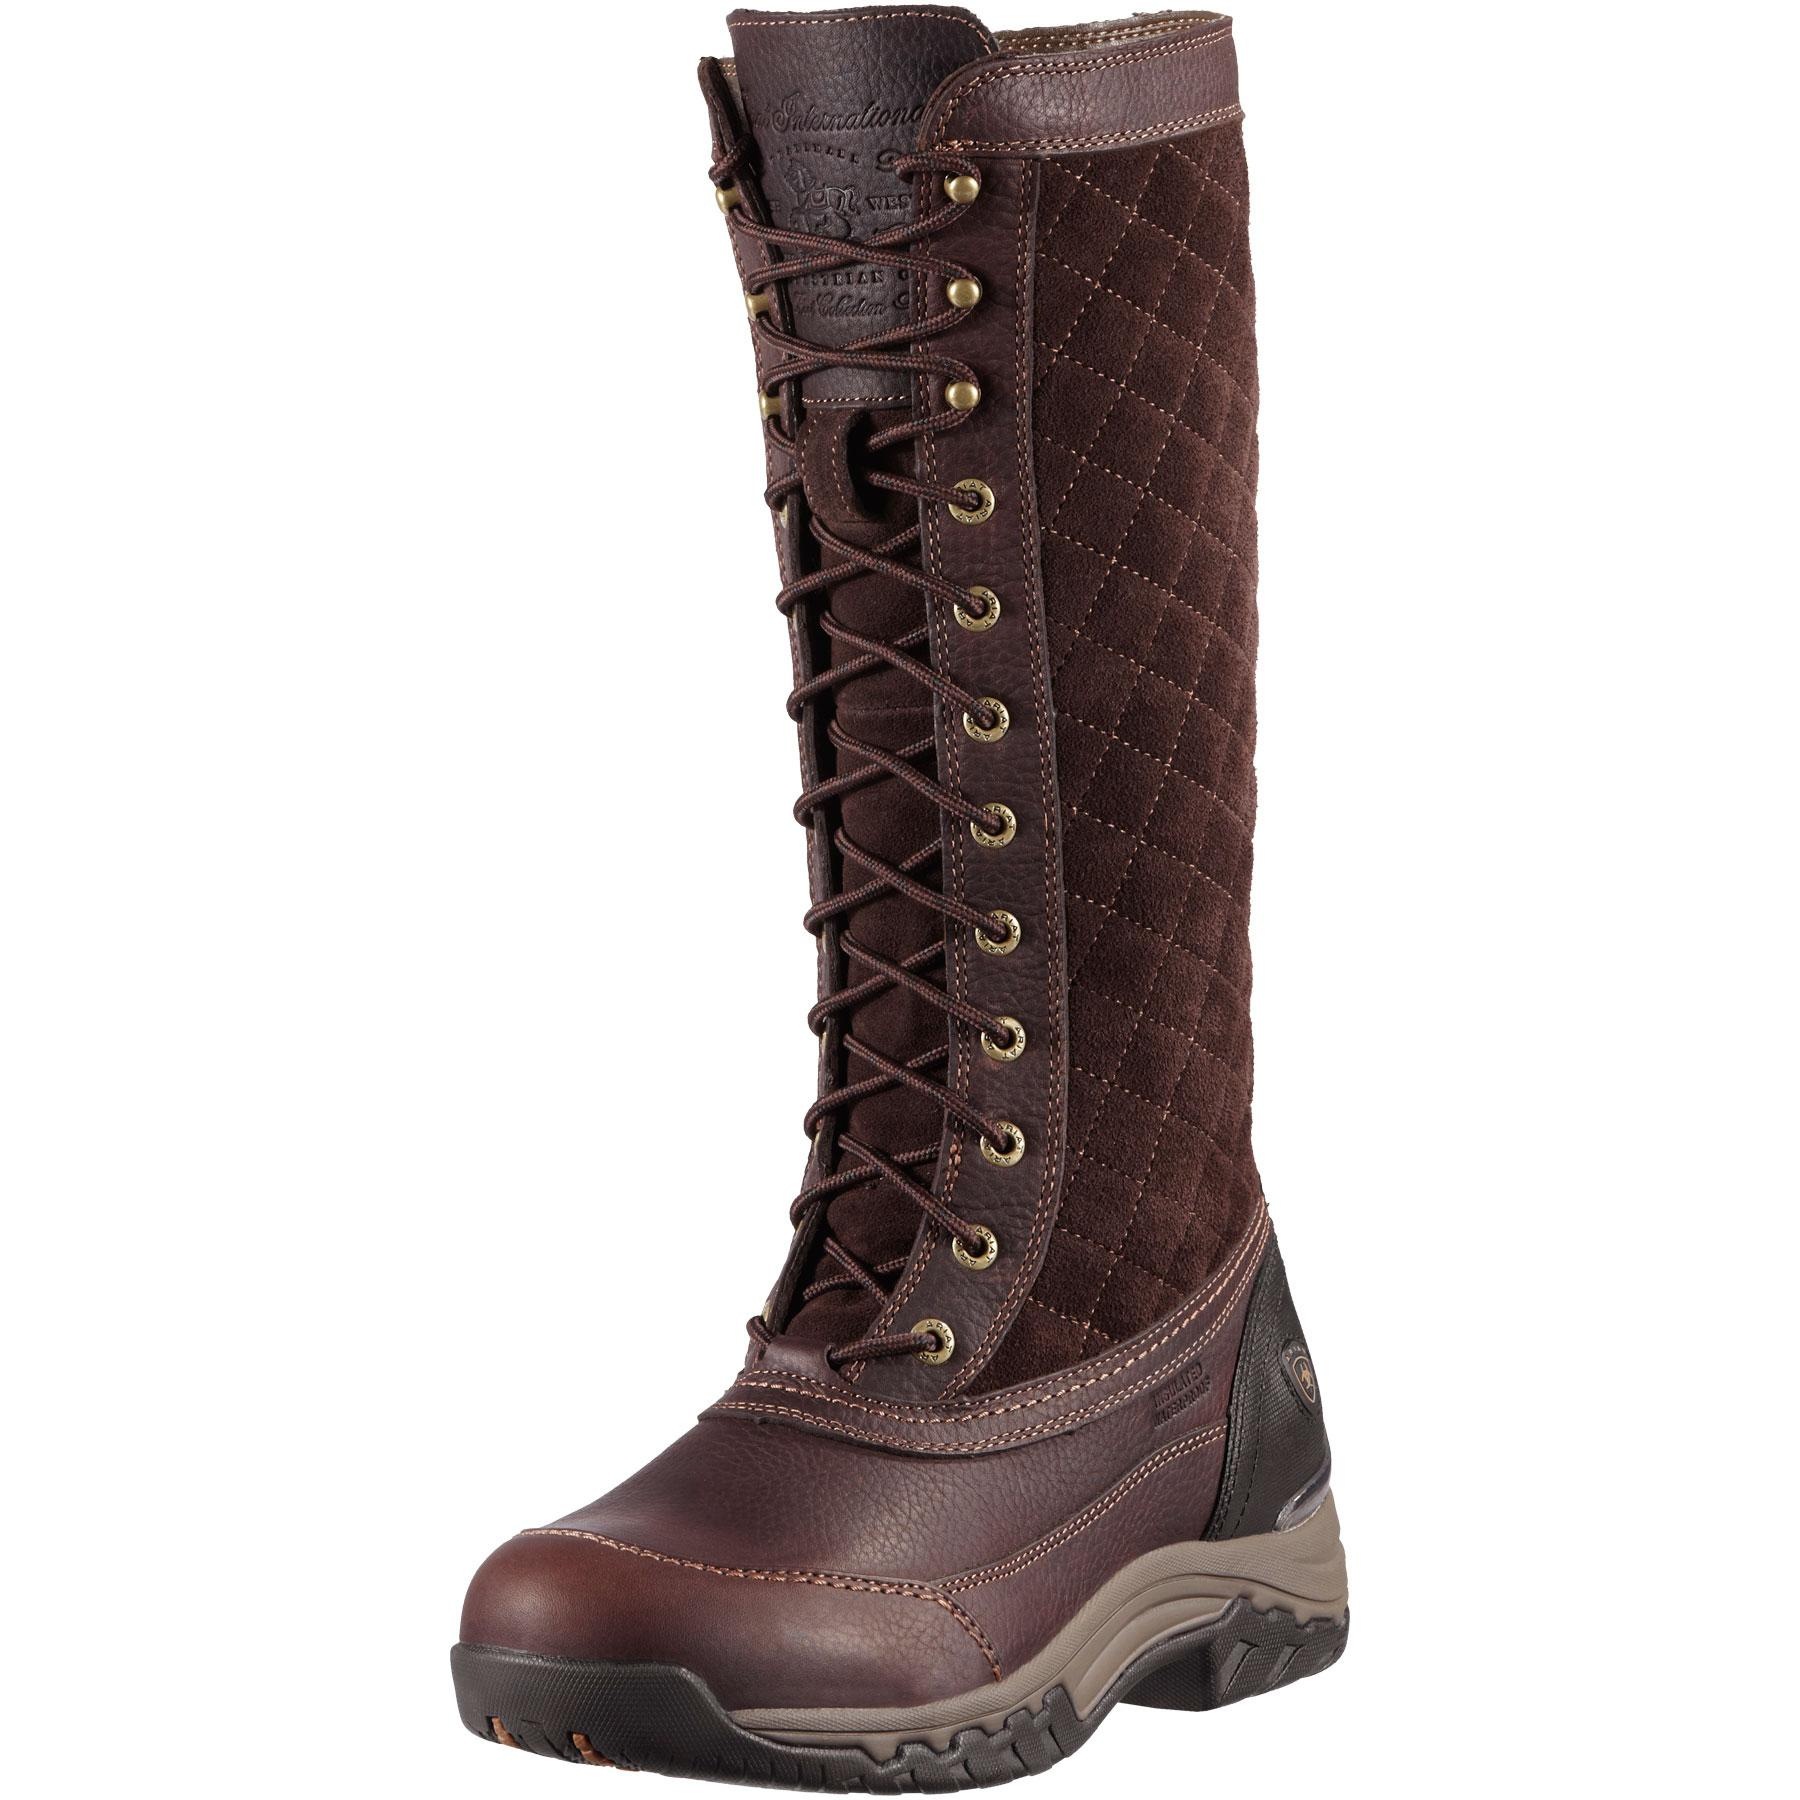 Insulated Ariat Boots zmAGsaML